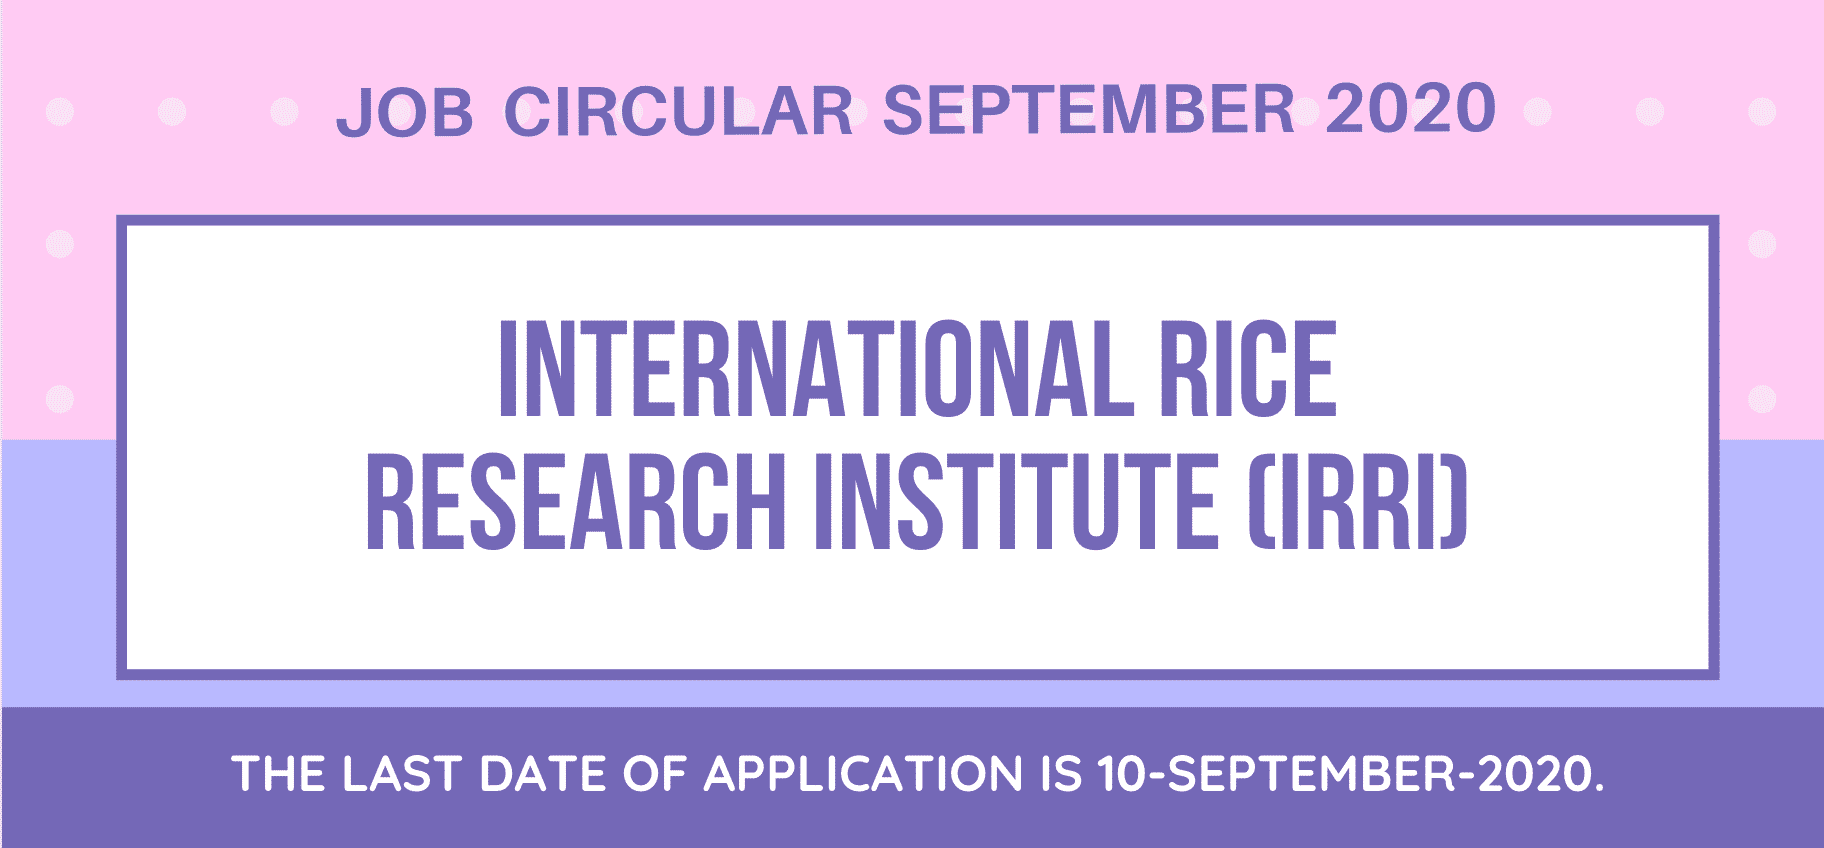 International Rice Research Institute (IRRI) Job Circular September 2020